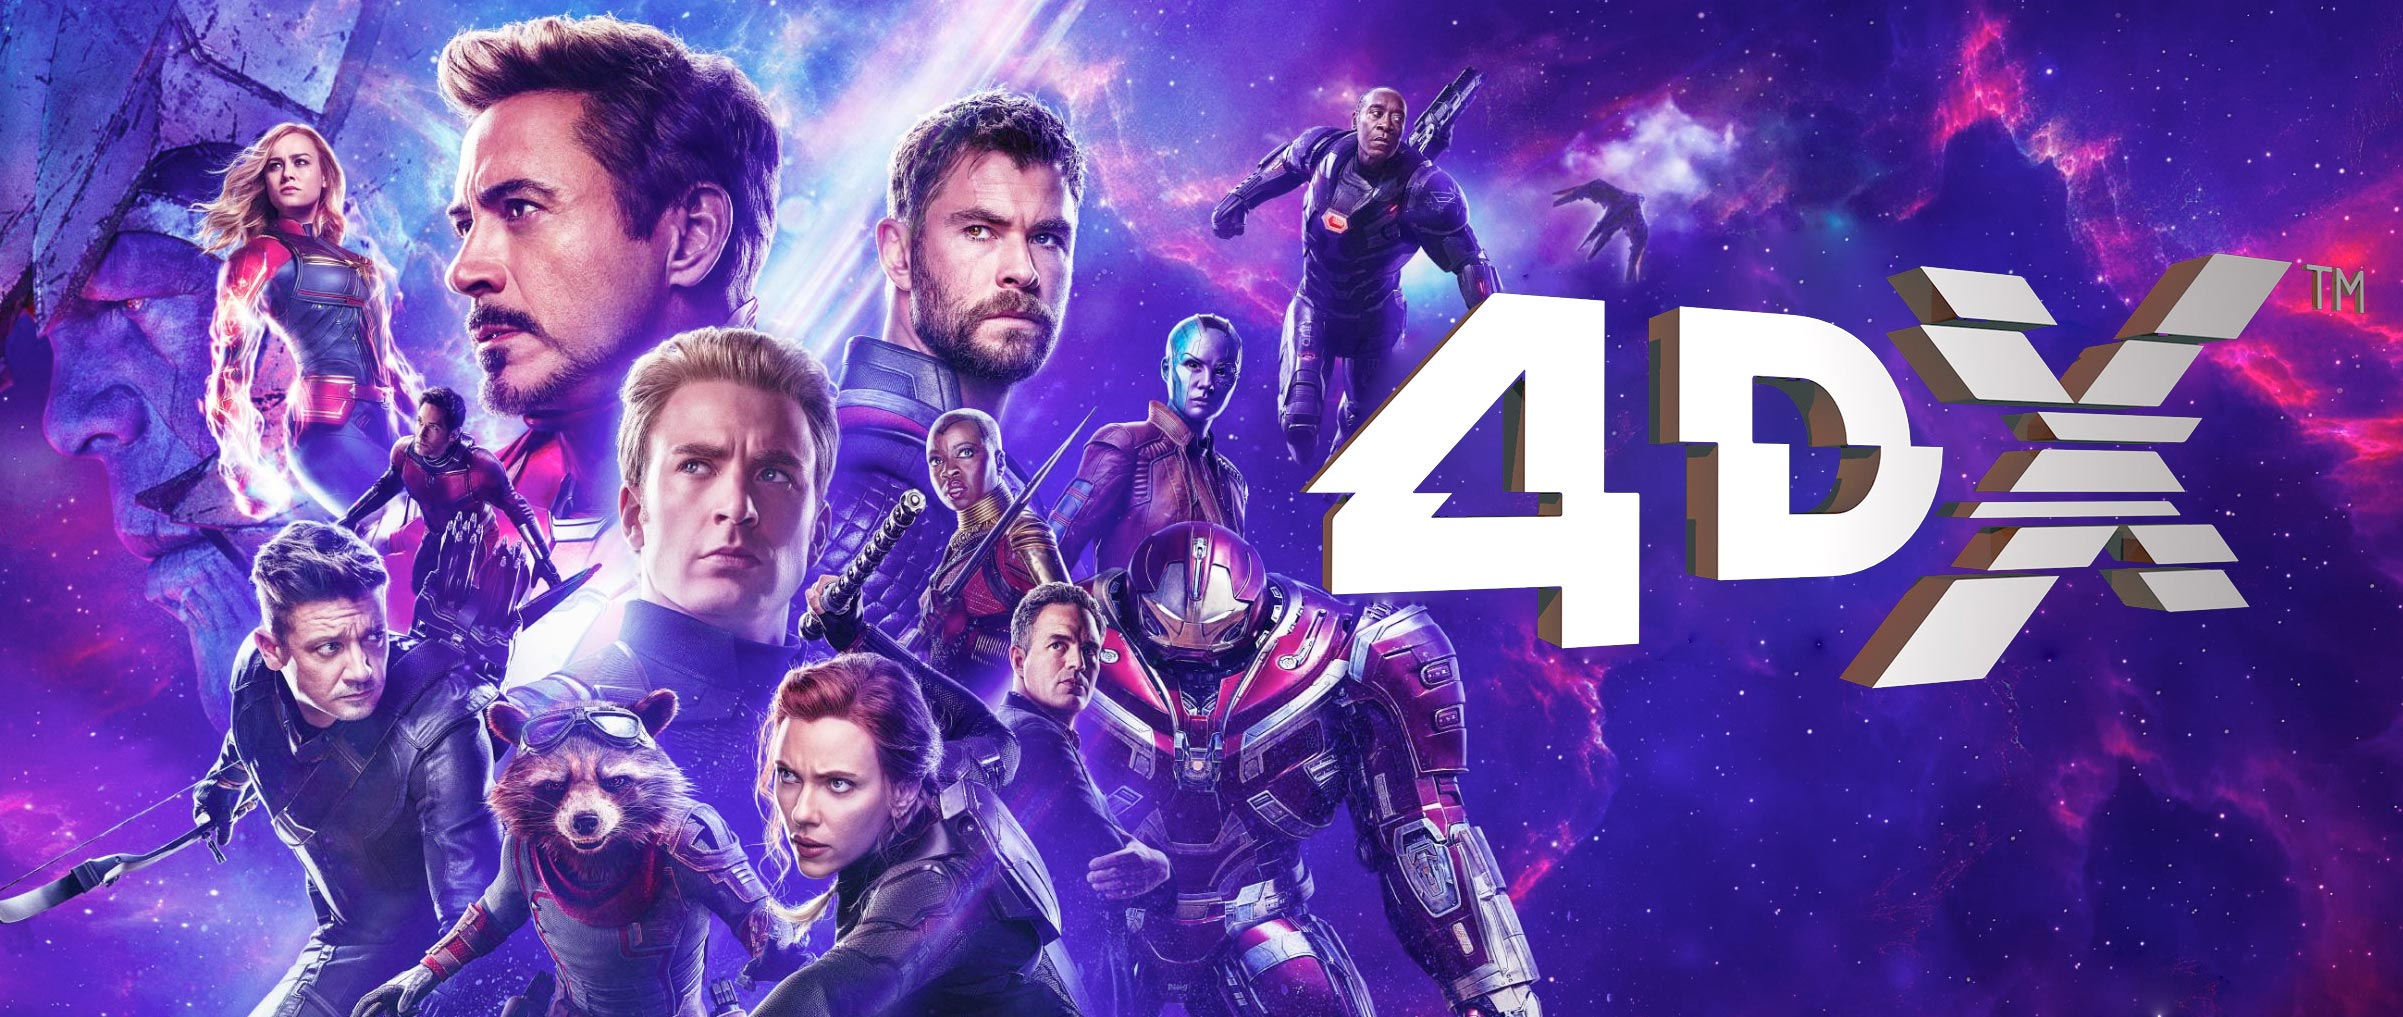 avengers endgame 4dx introduces signature character motions /film